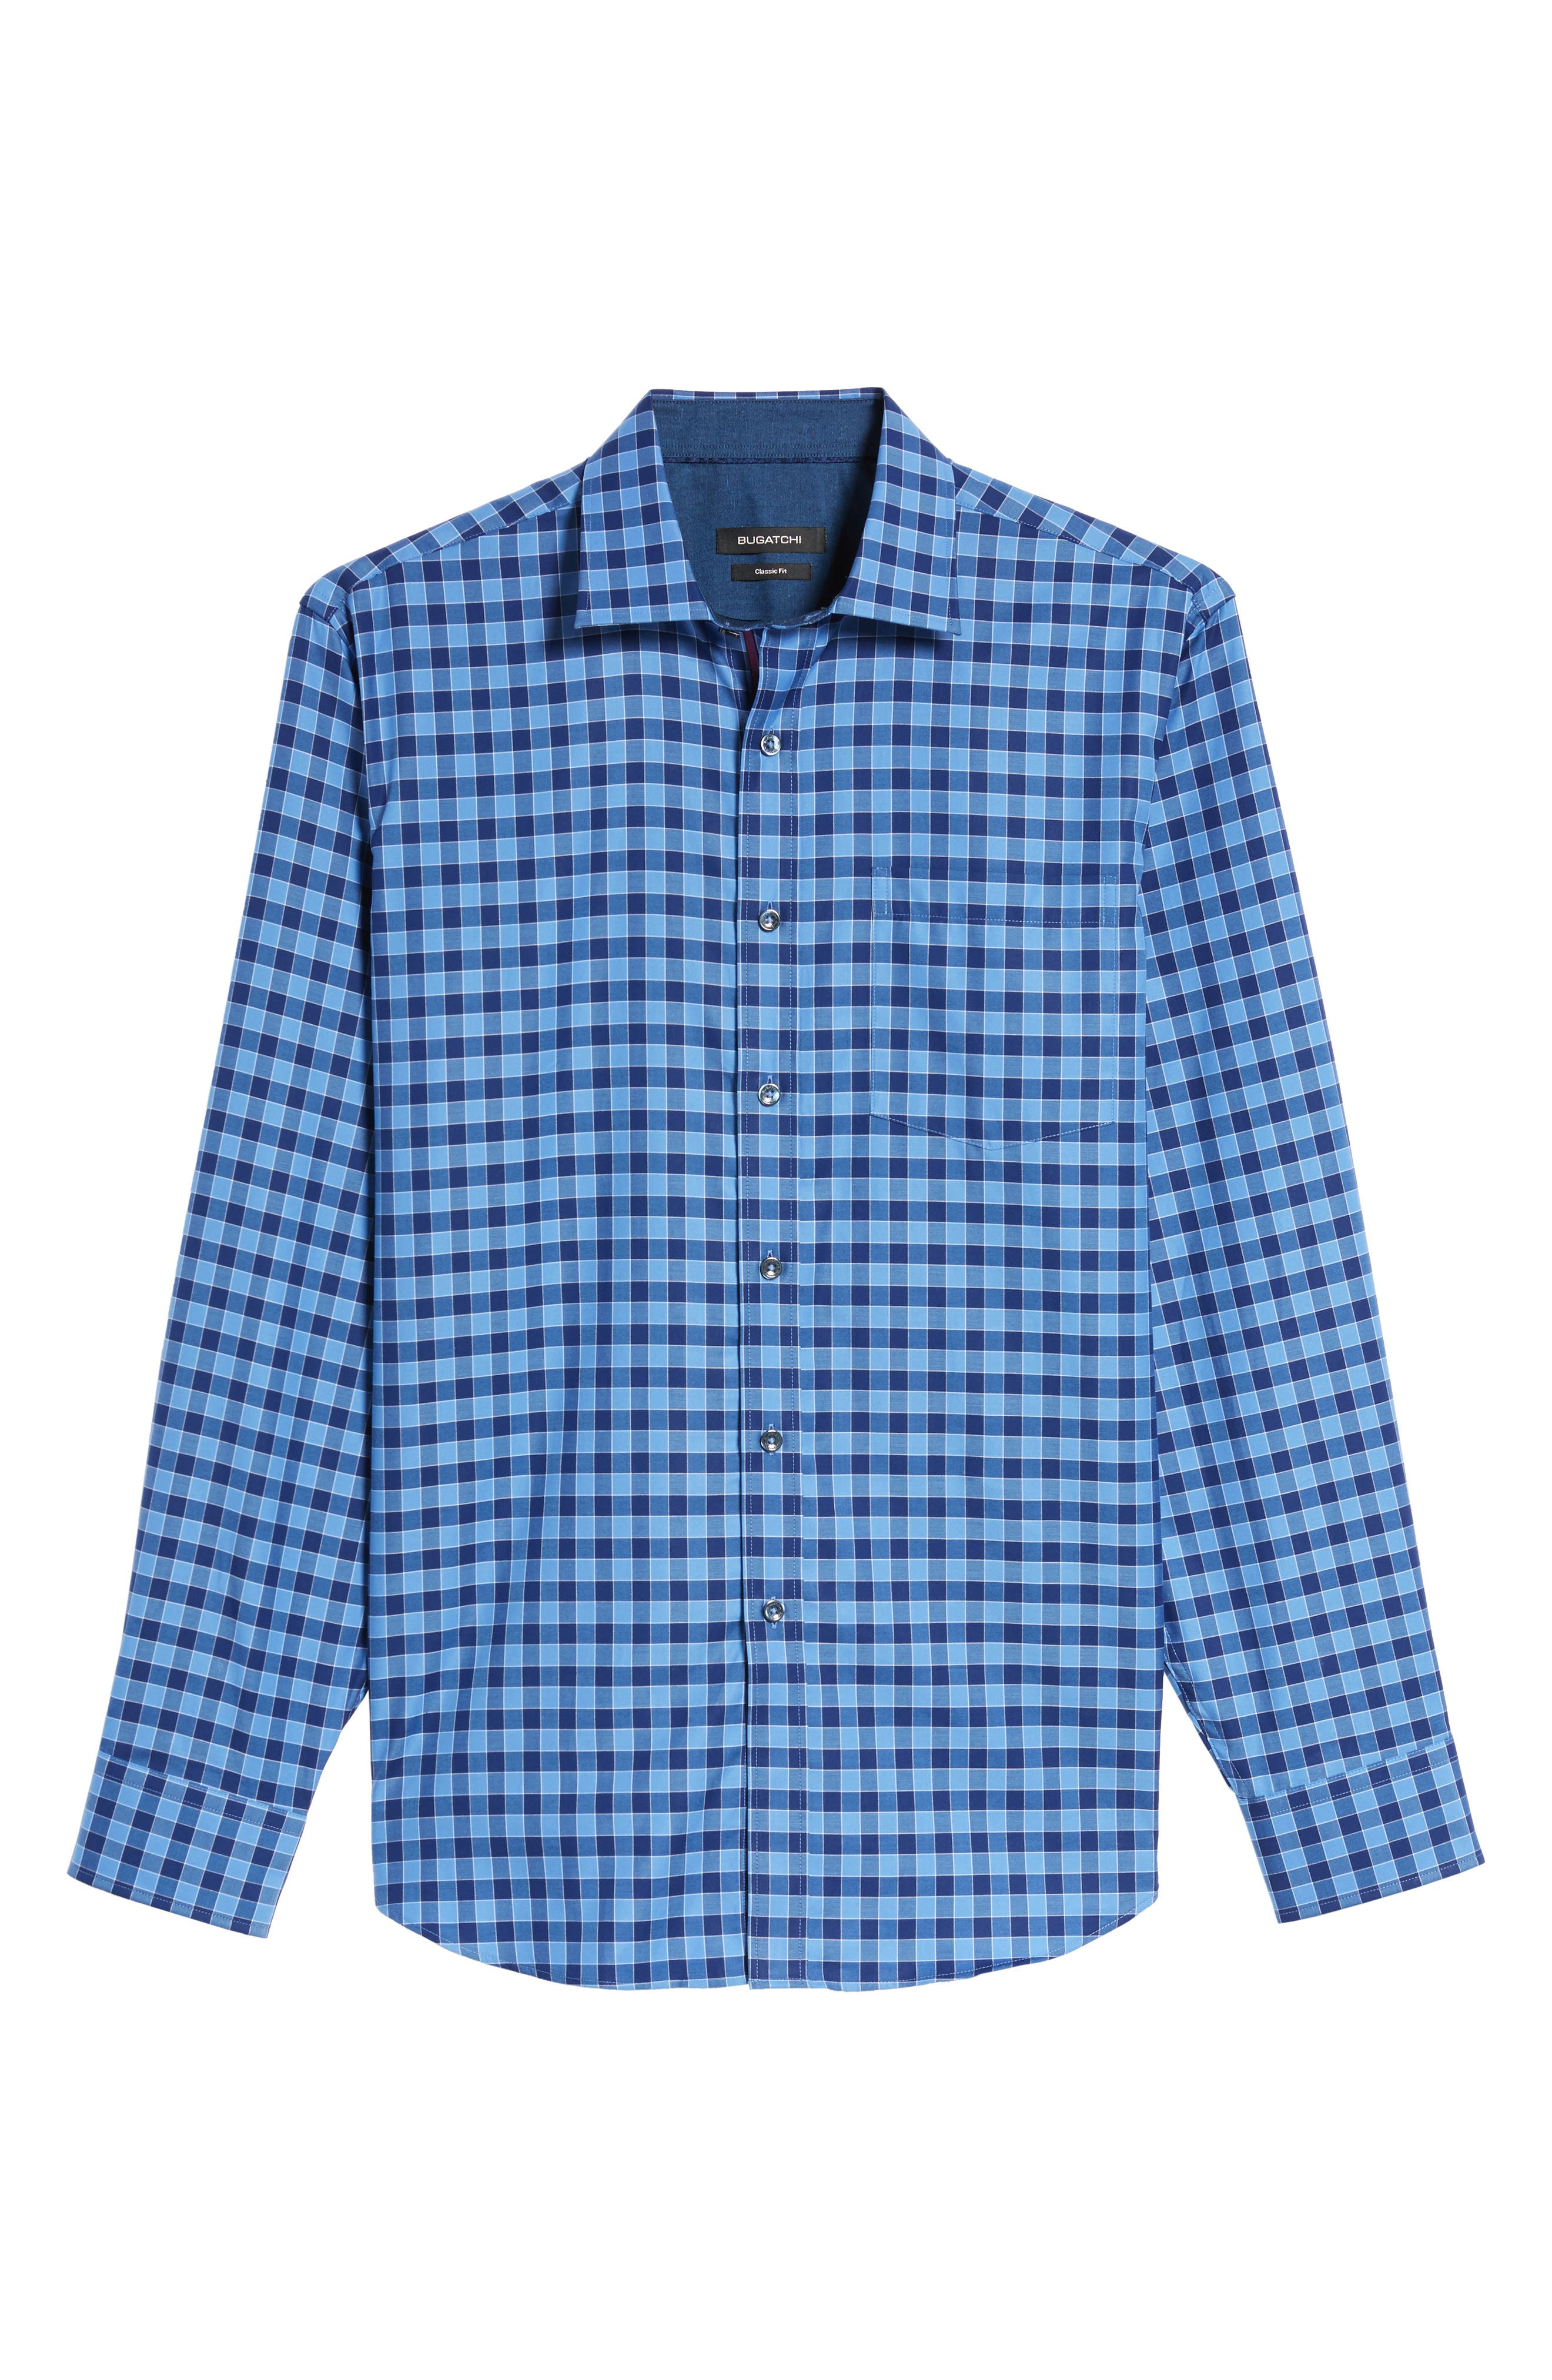 Classic Fit Check Sport Shirt,                             Alternate thumbnail 6, color,                             Navy